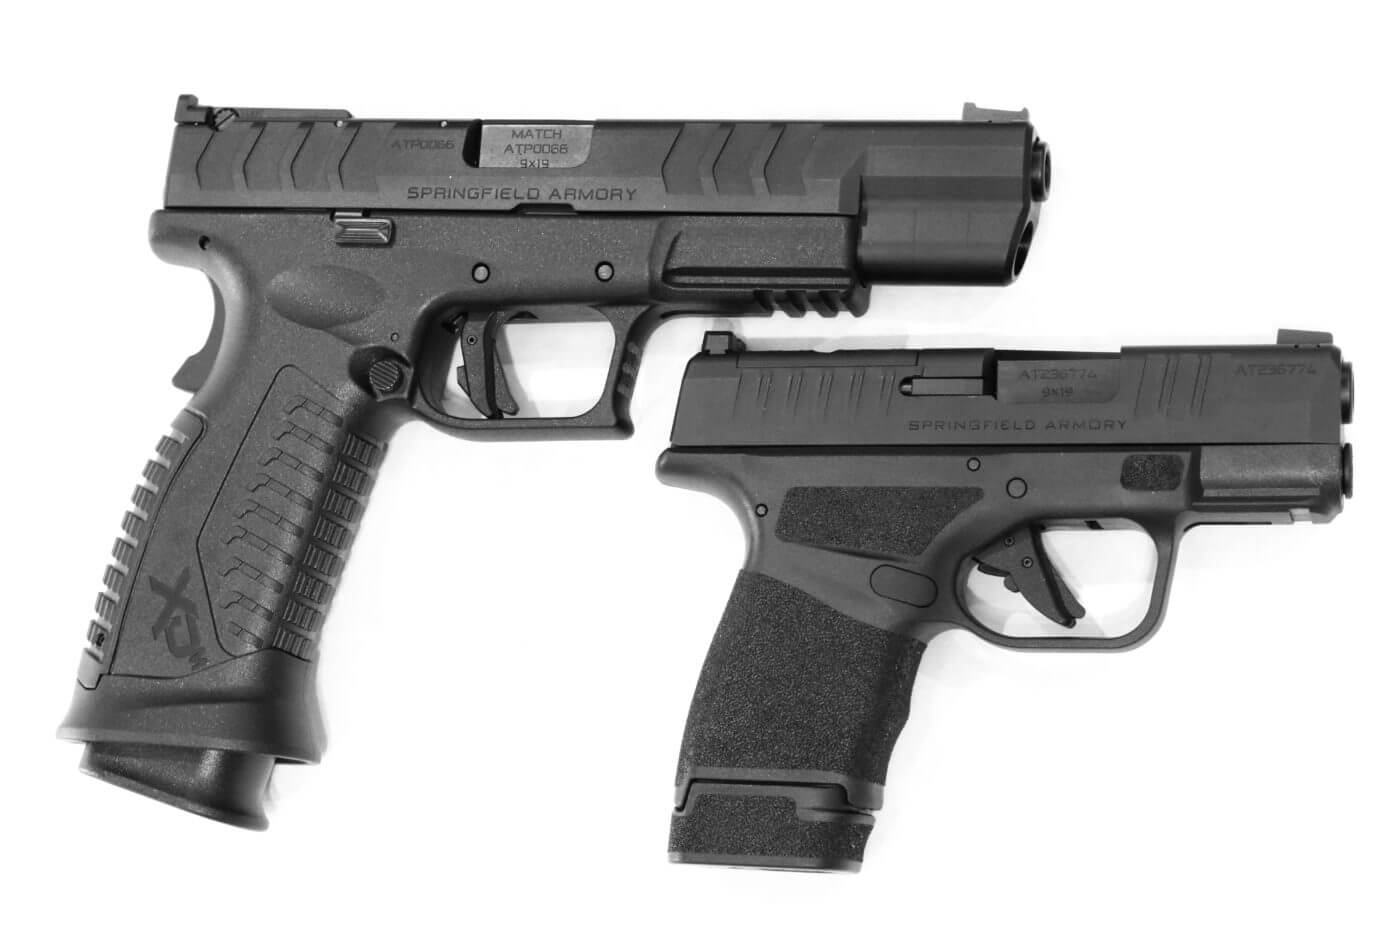 Comparing the grip safety of the XD-M to the safeties on the Hellcat pistol